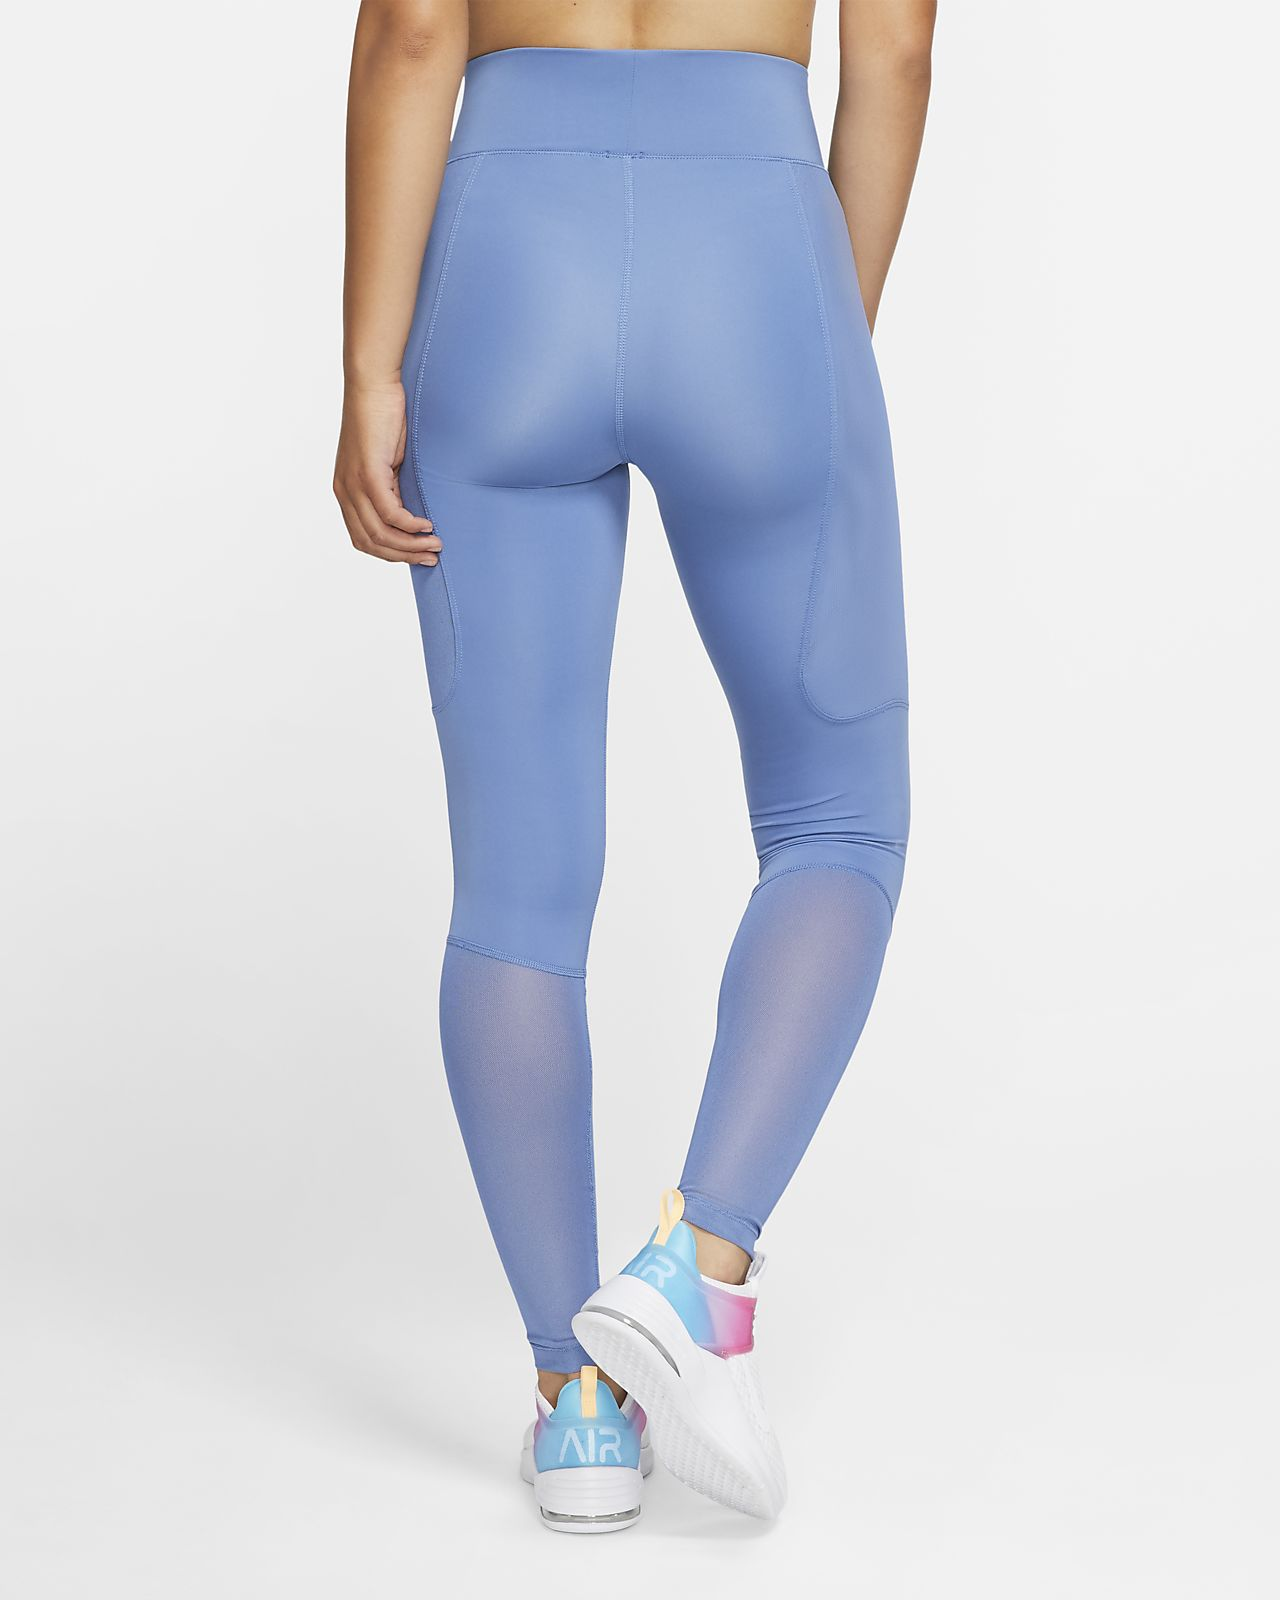 factory authentic 101e0 f9d1b Low Resolution Nike Pro HyperCool Women s Tights Nike Pro HyperCool Women s  Tights